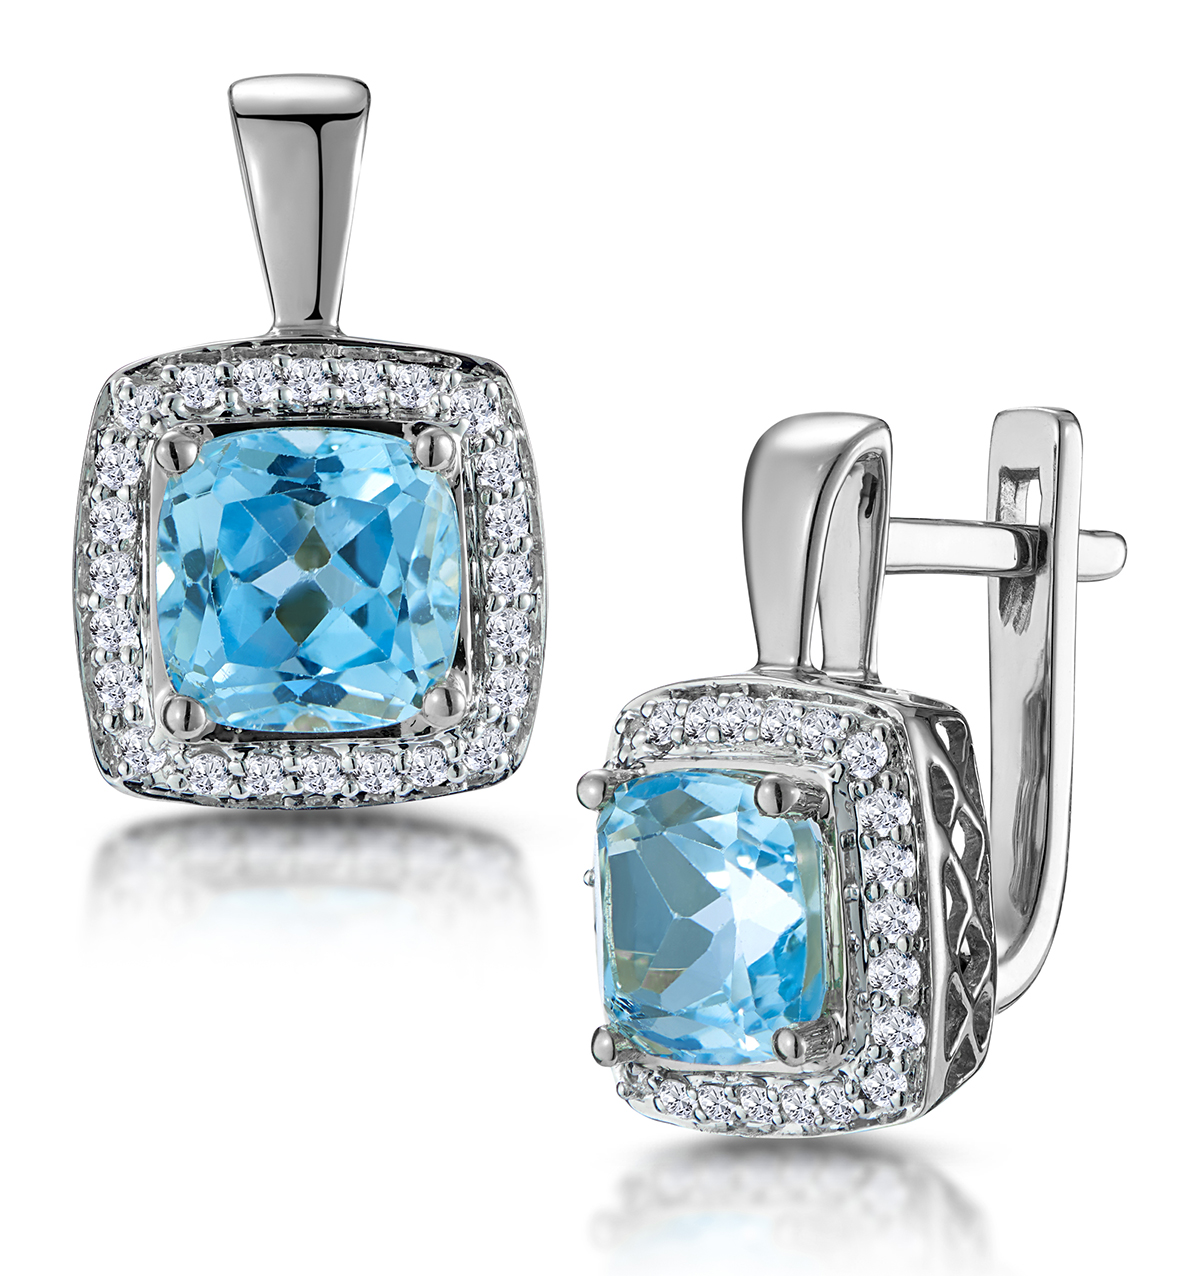 3CT BLUE TOPAZ AND DIAMOND HALO EARRINGS 18KW GOLD ASTERIA COLLECTION